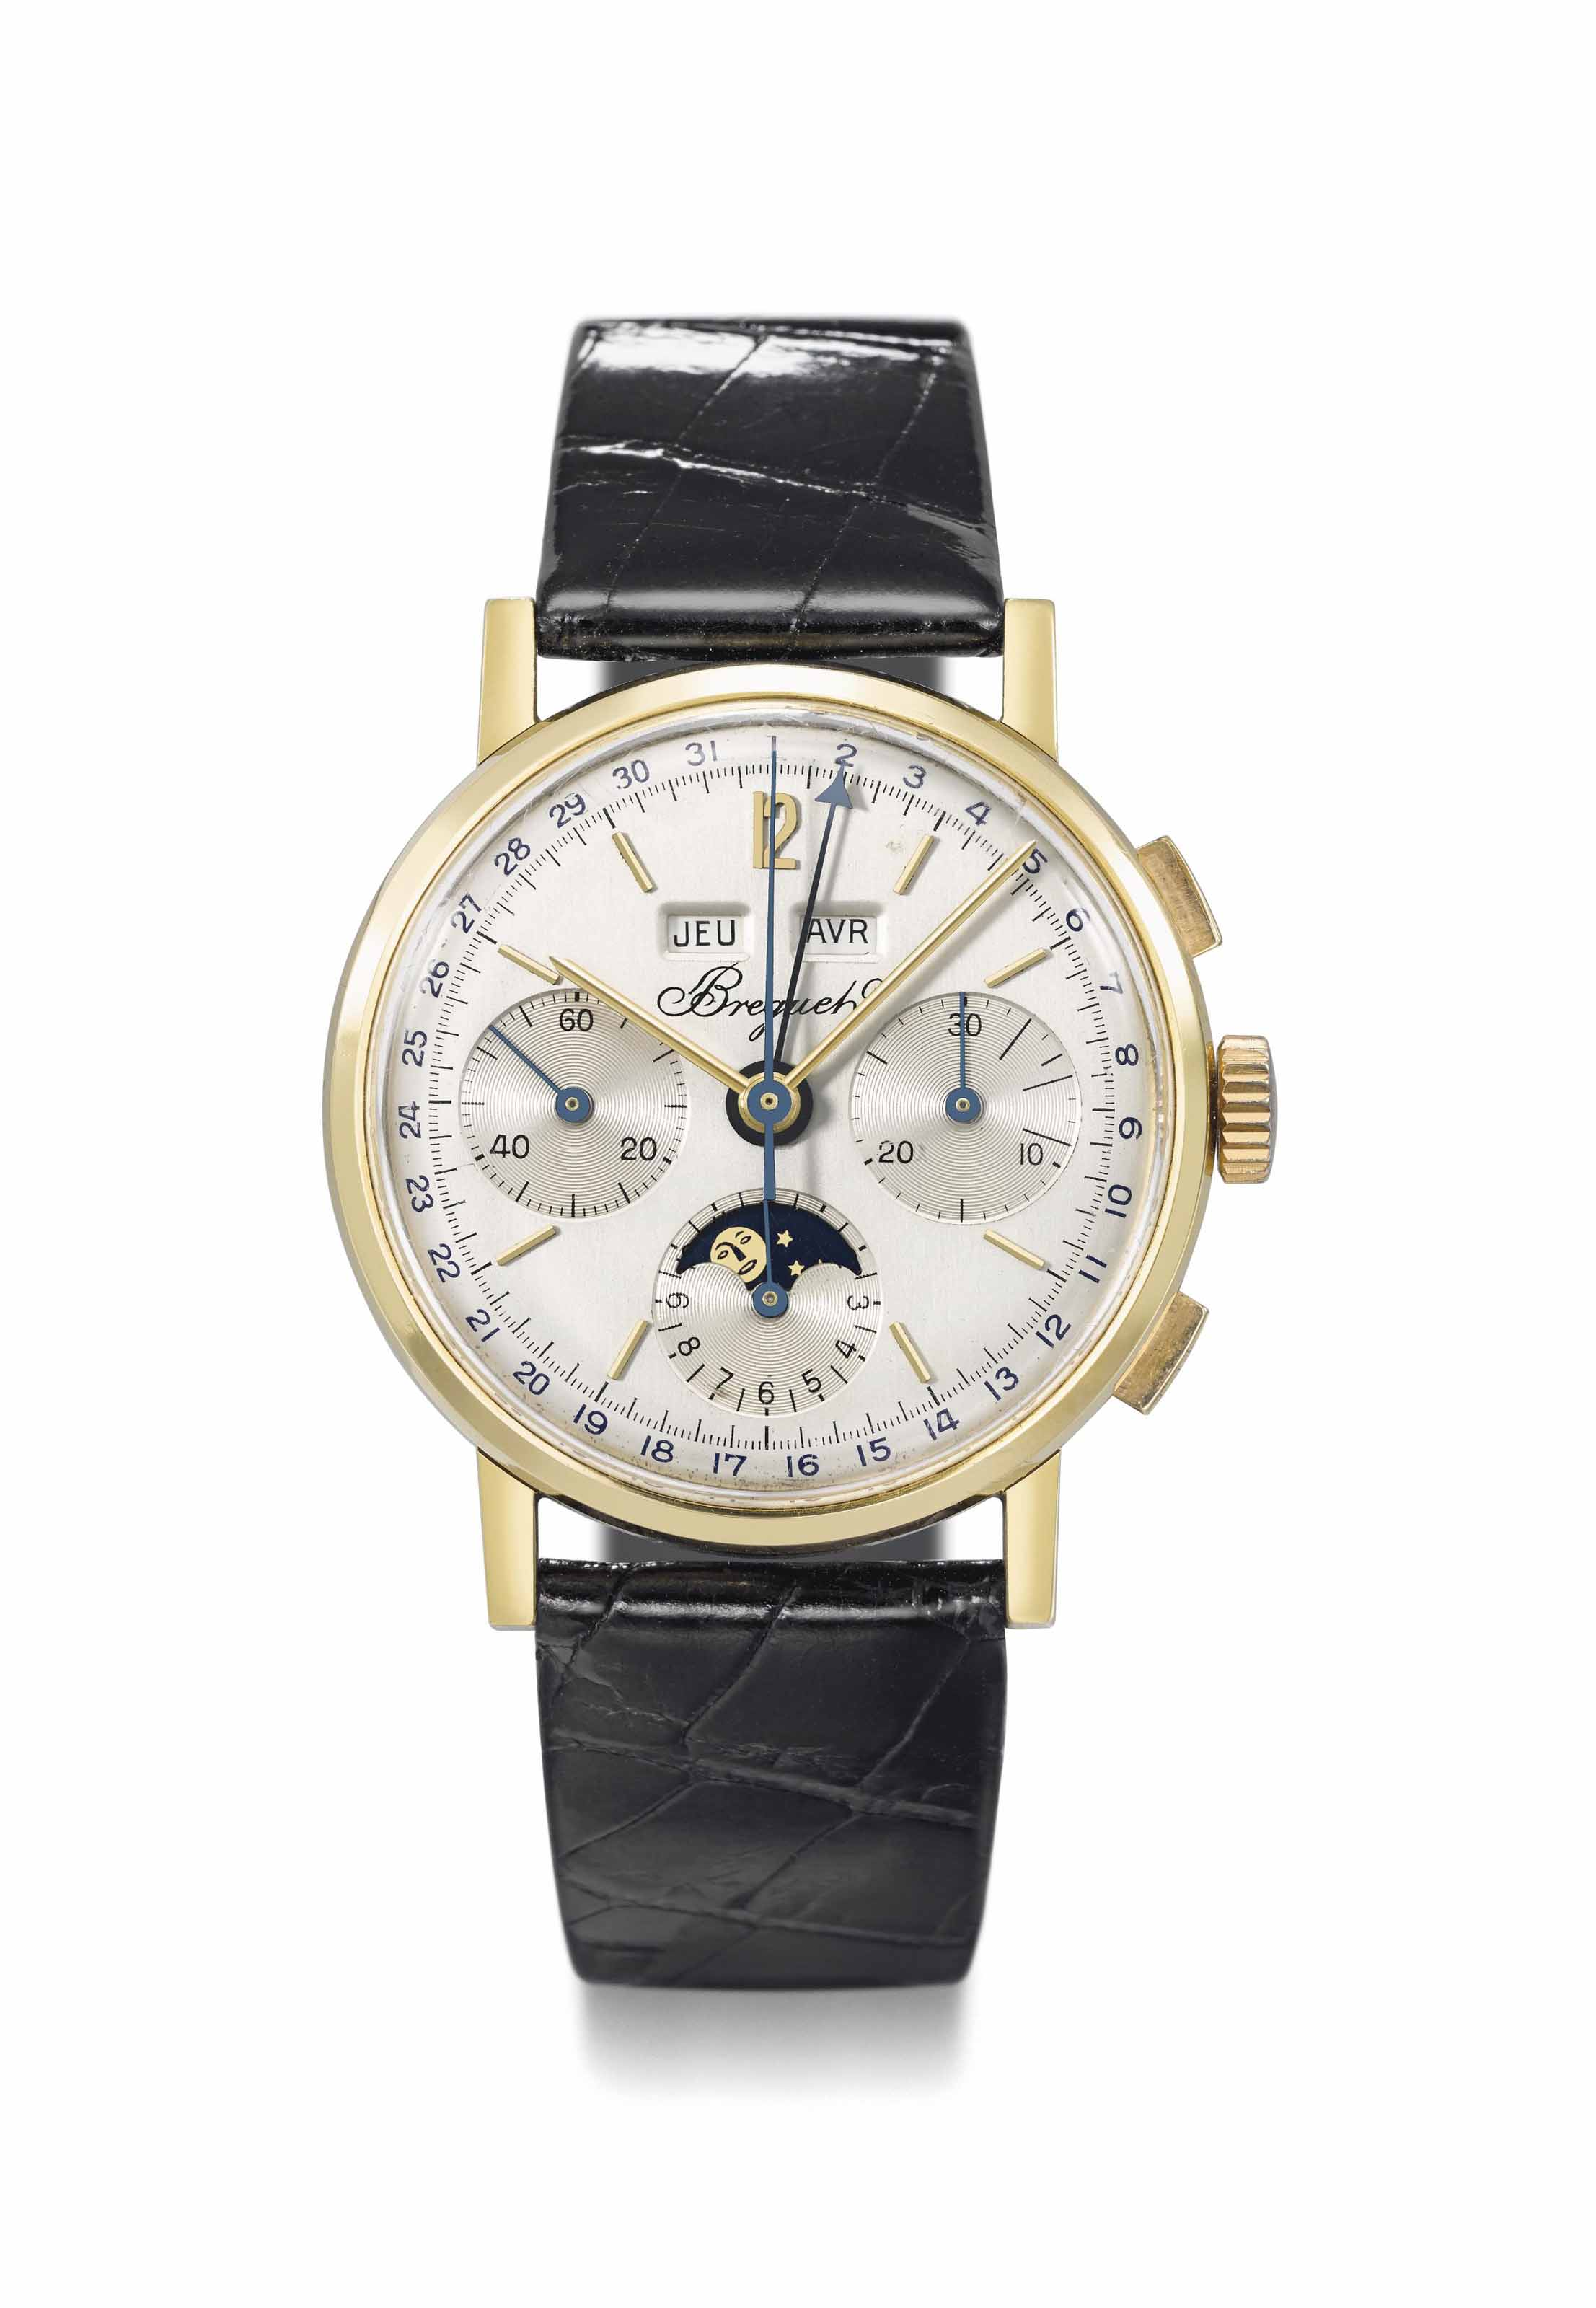 Breguet. A very fine, rare and attractive 18K gold triple calendar chronograph wristwatch with moon phases